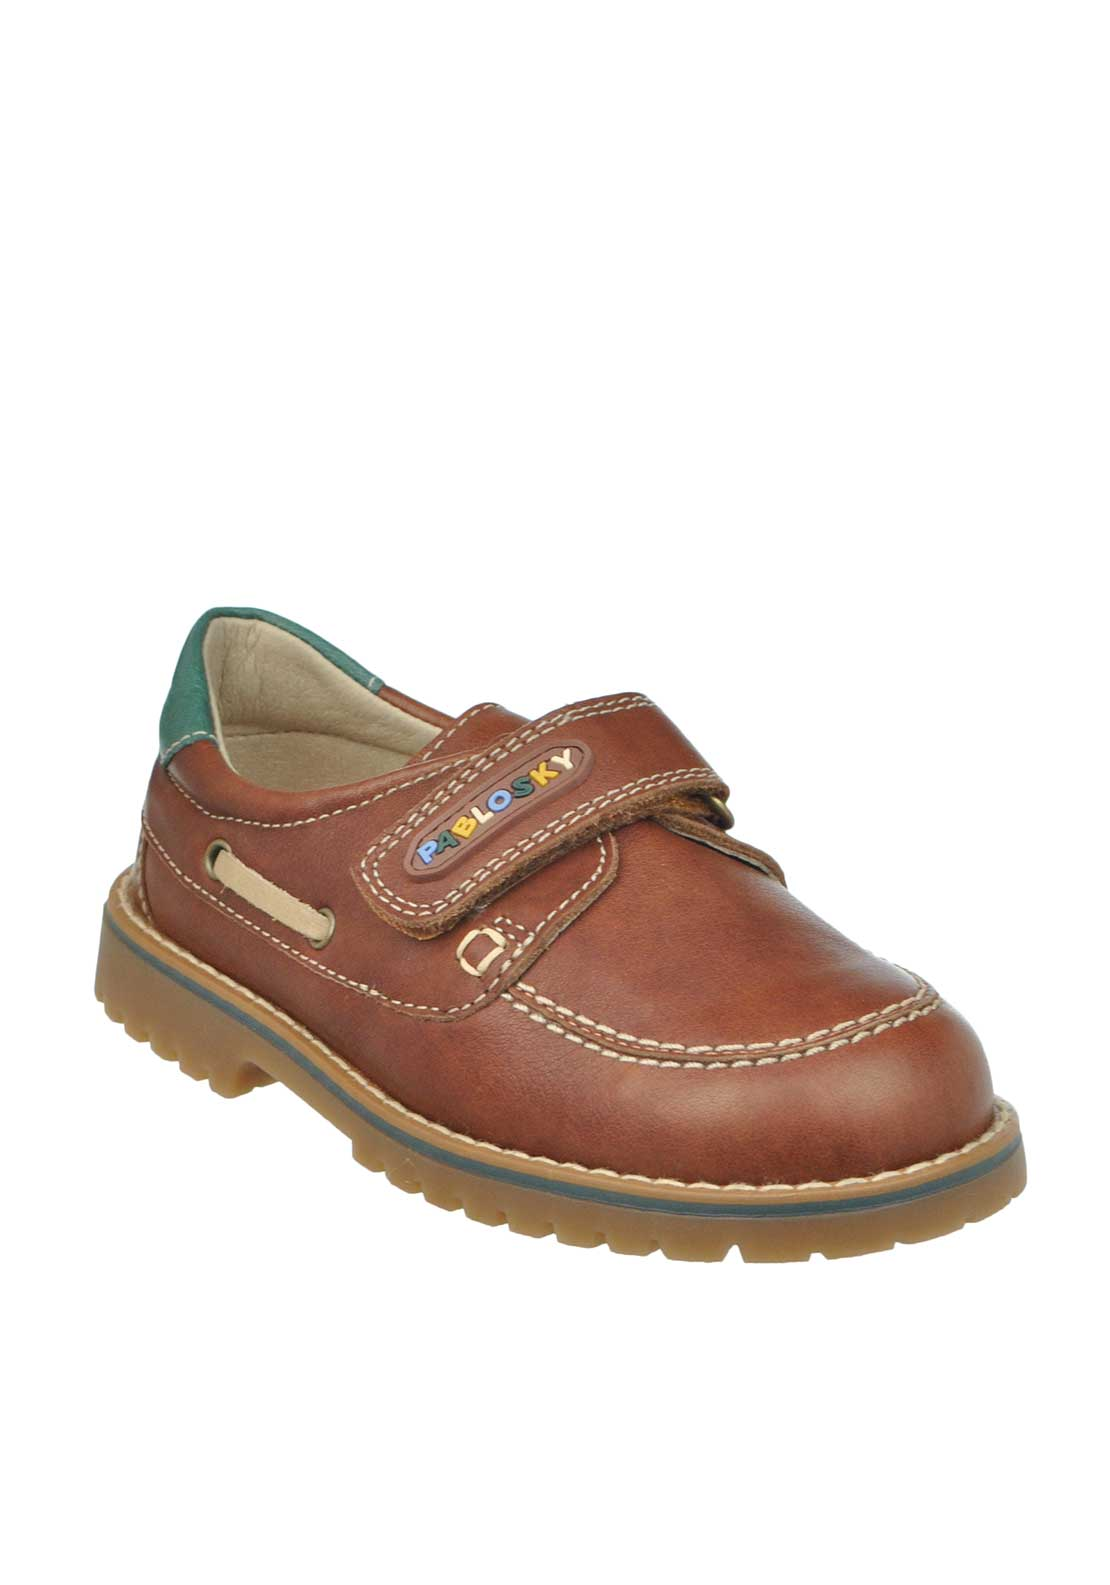 Pablosky Baby Boys Leather Velcro Strap Loafer Shoes, Tan